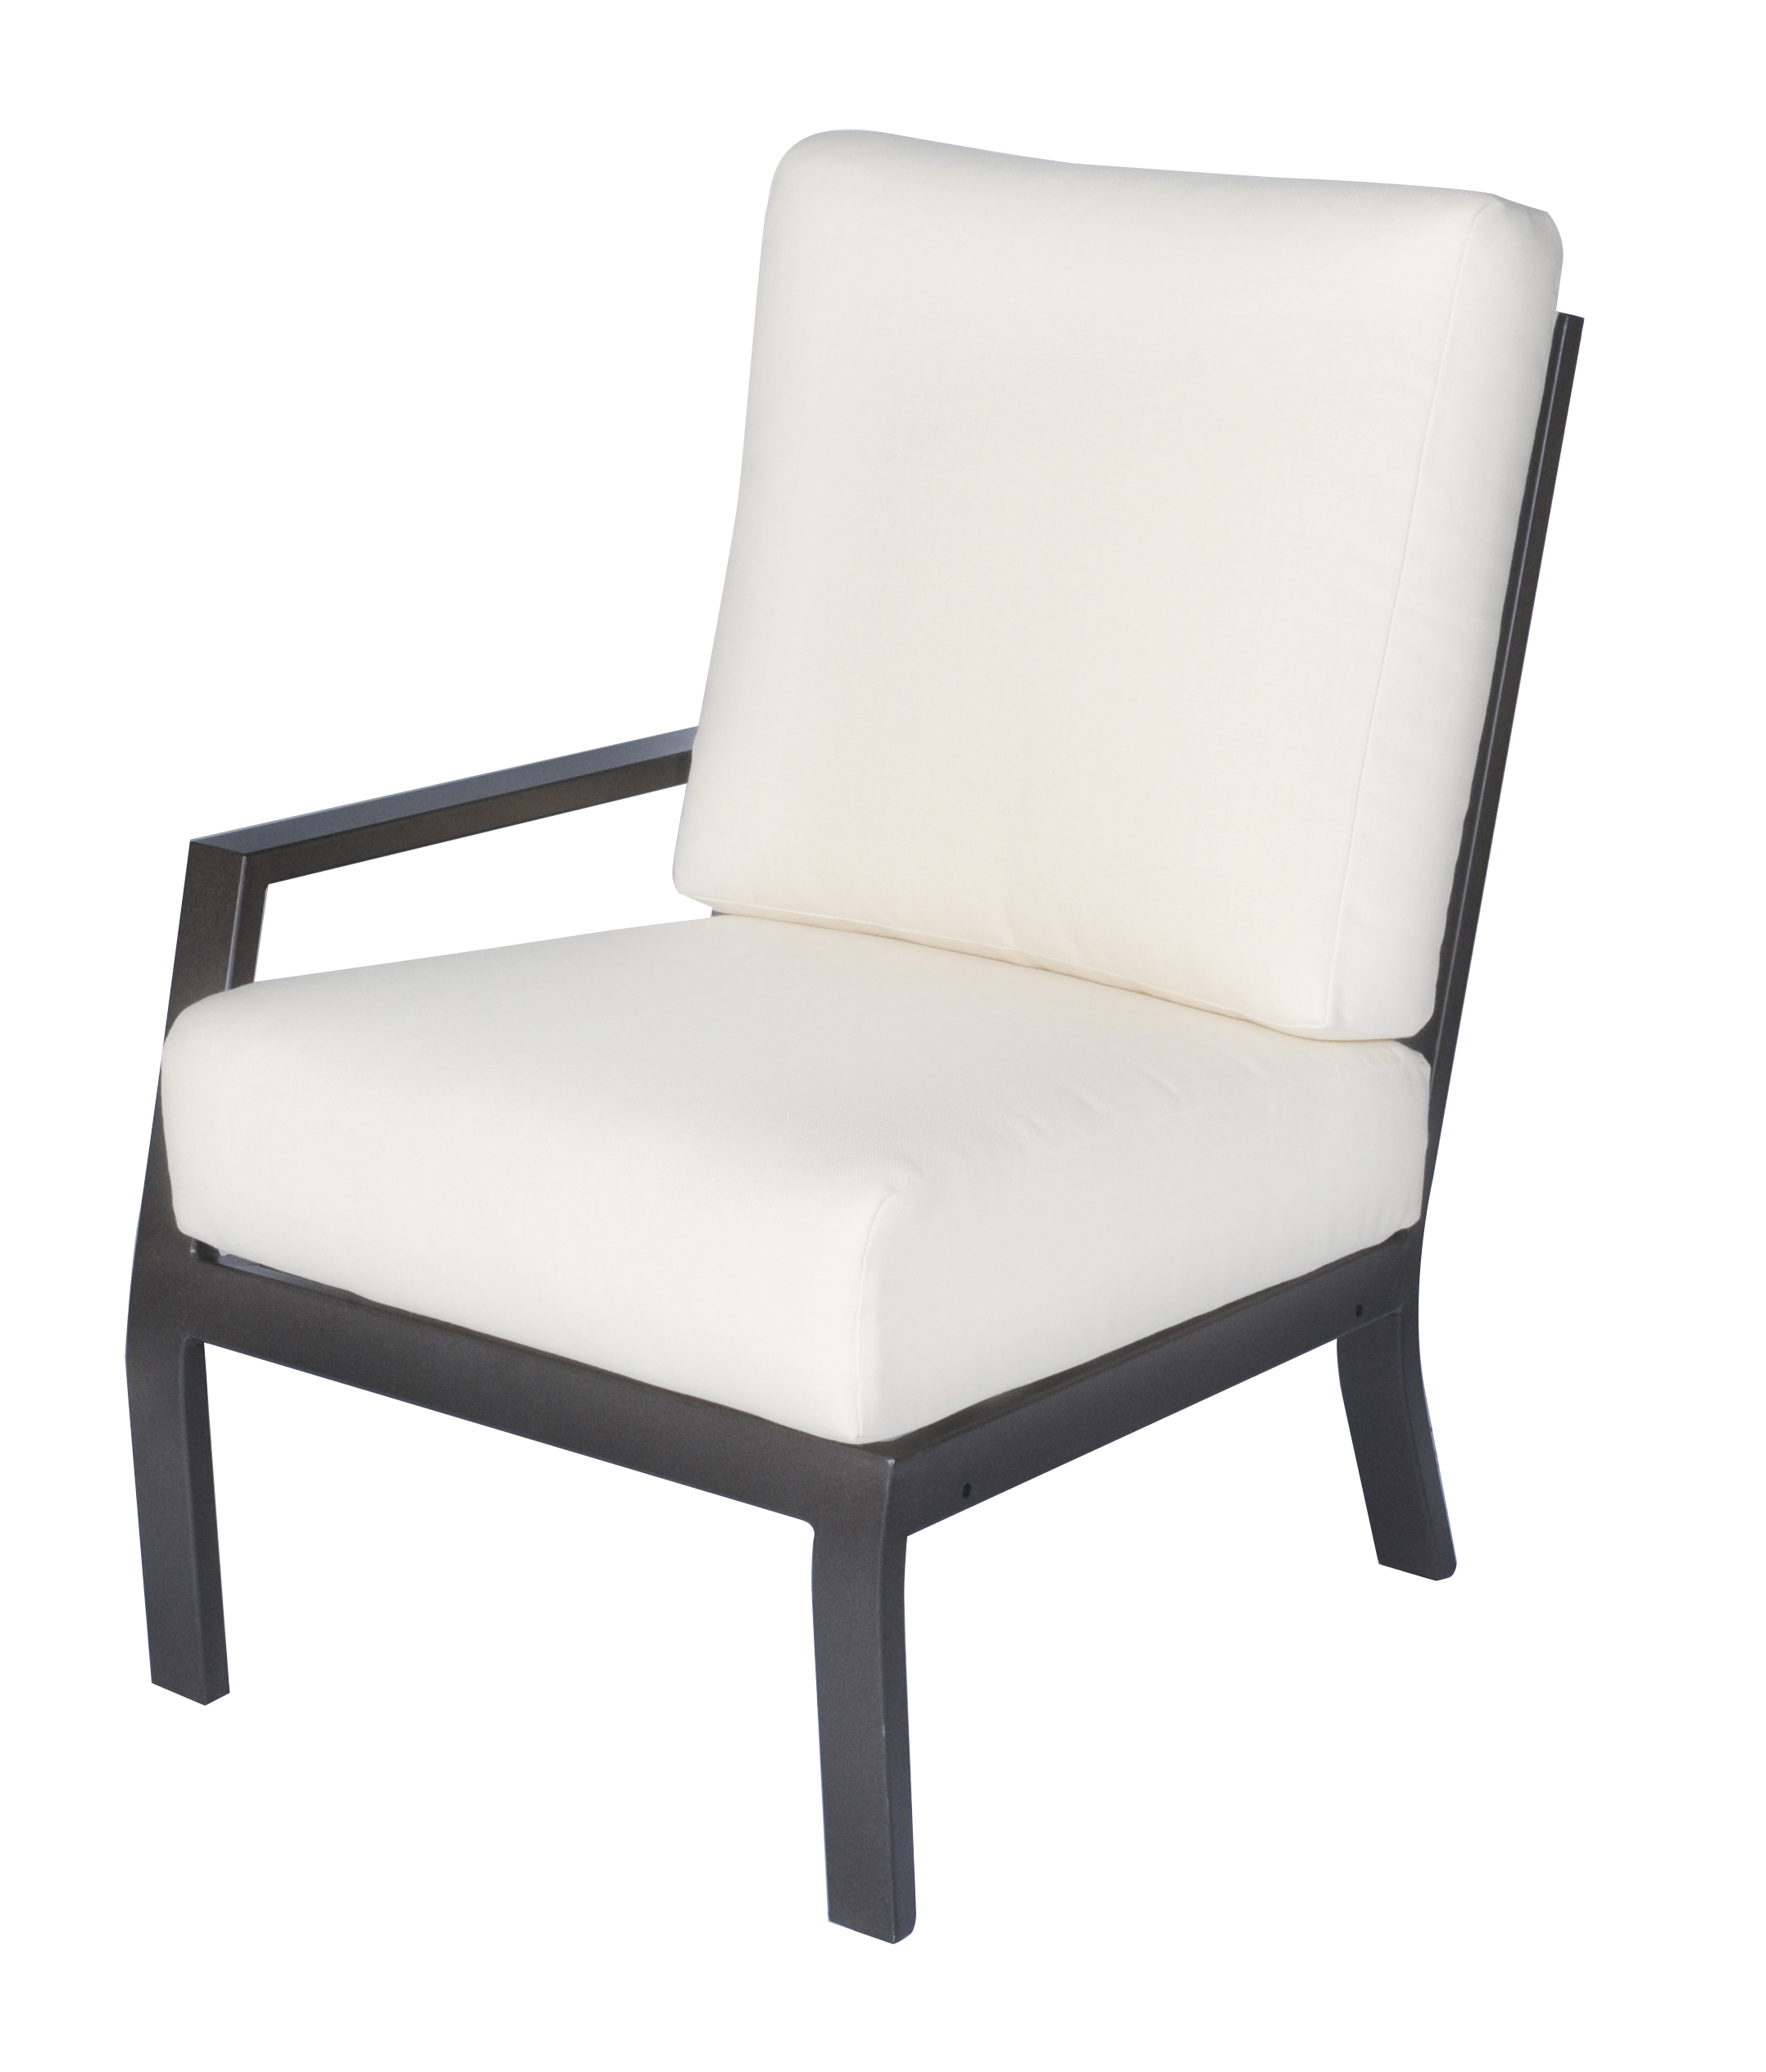 Verona Left Arm Sectional Chair